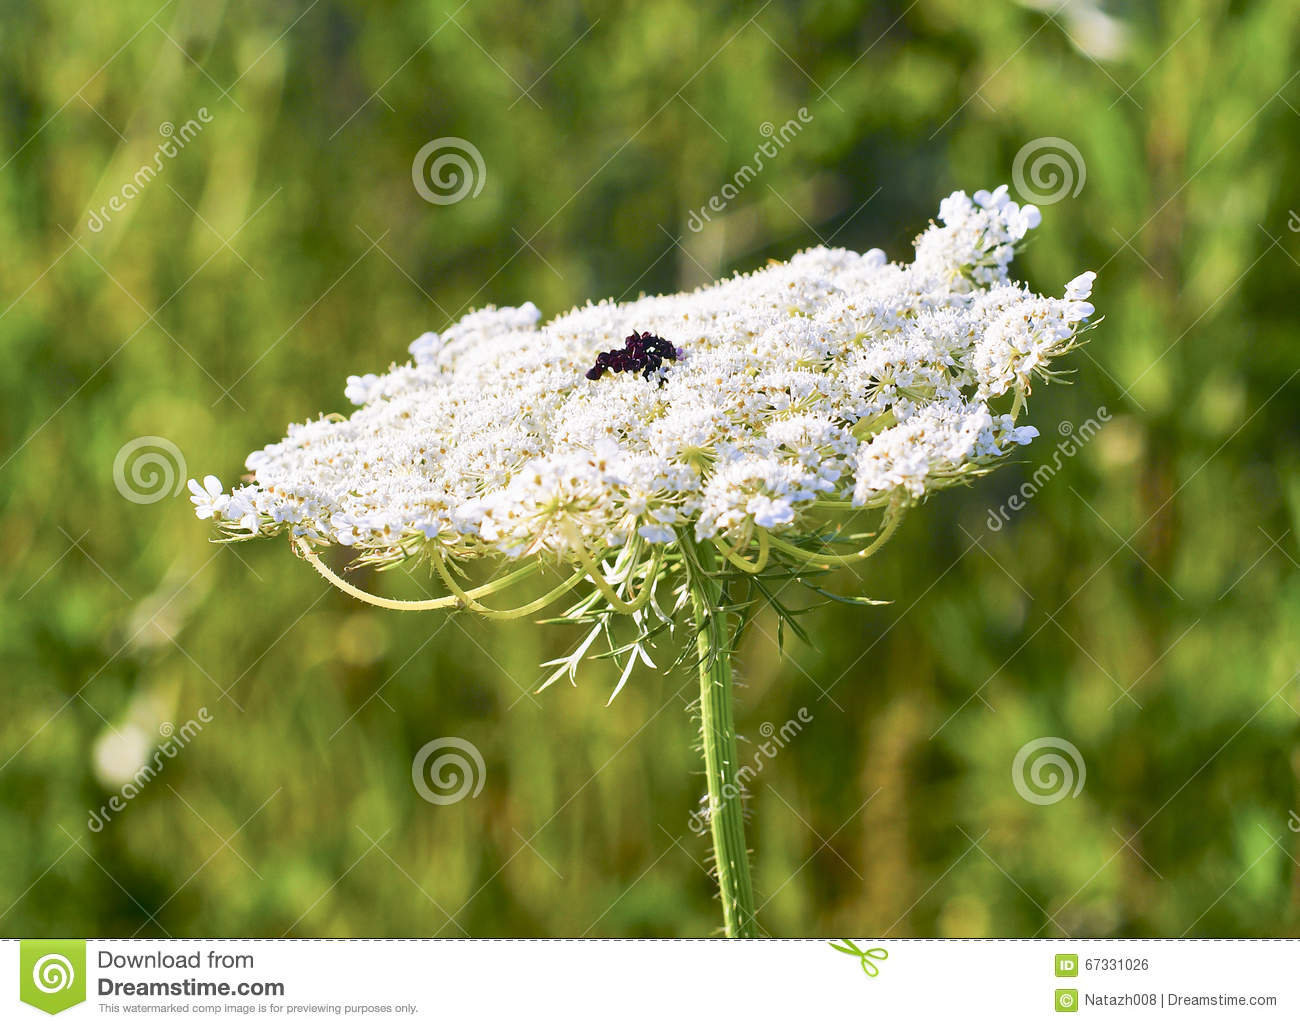 Dill Plant With White Tip And Black Dot In The Middle Stock Photo